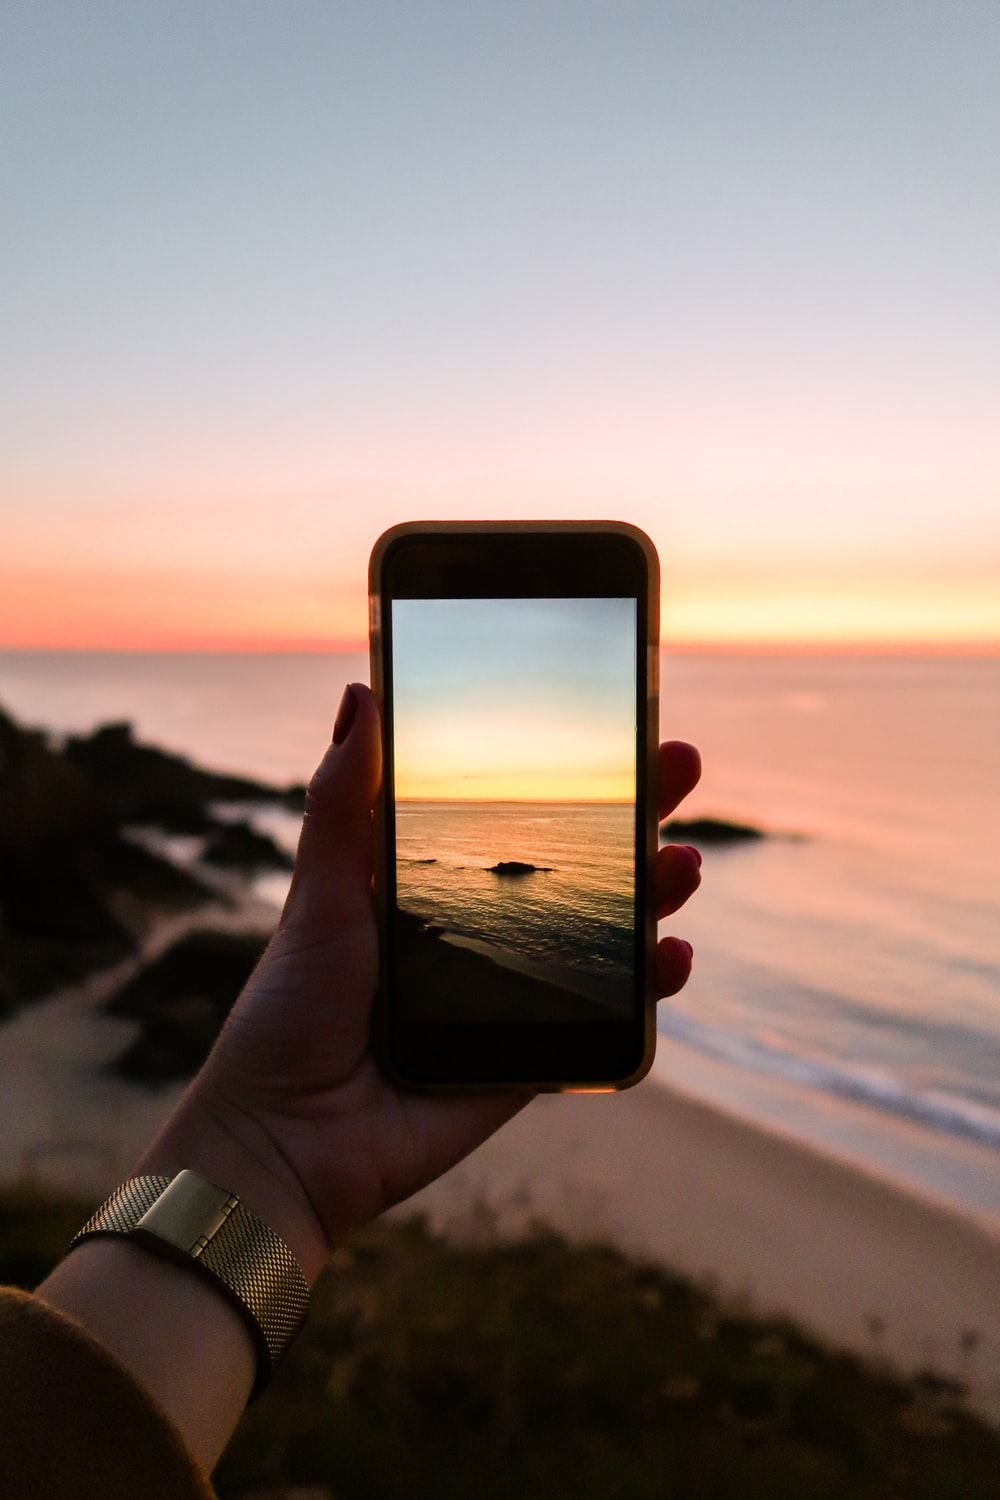 person holding smartphone taking photo of sea